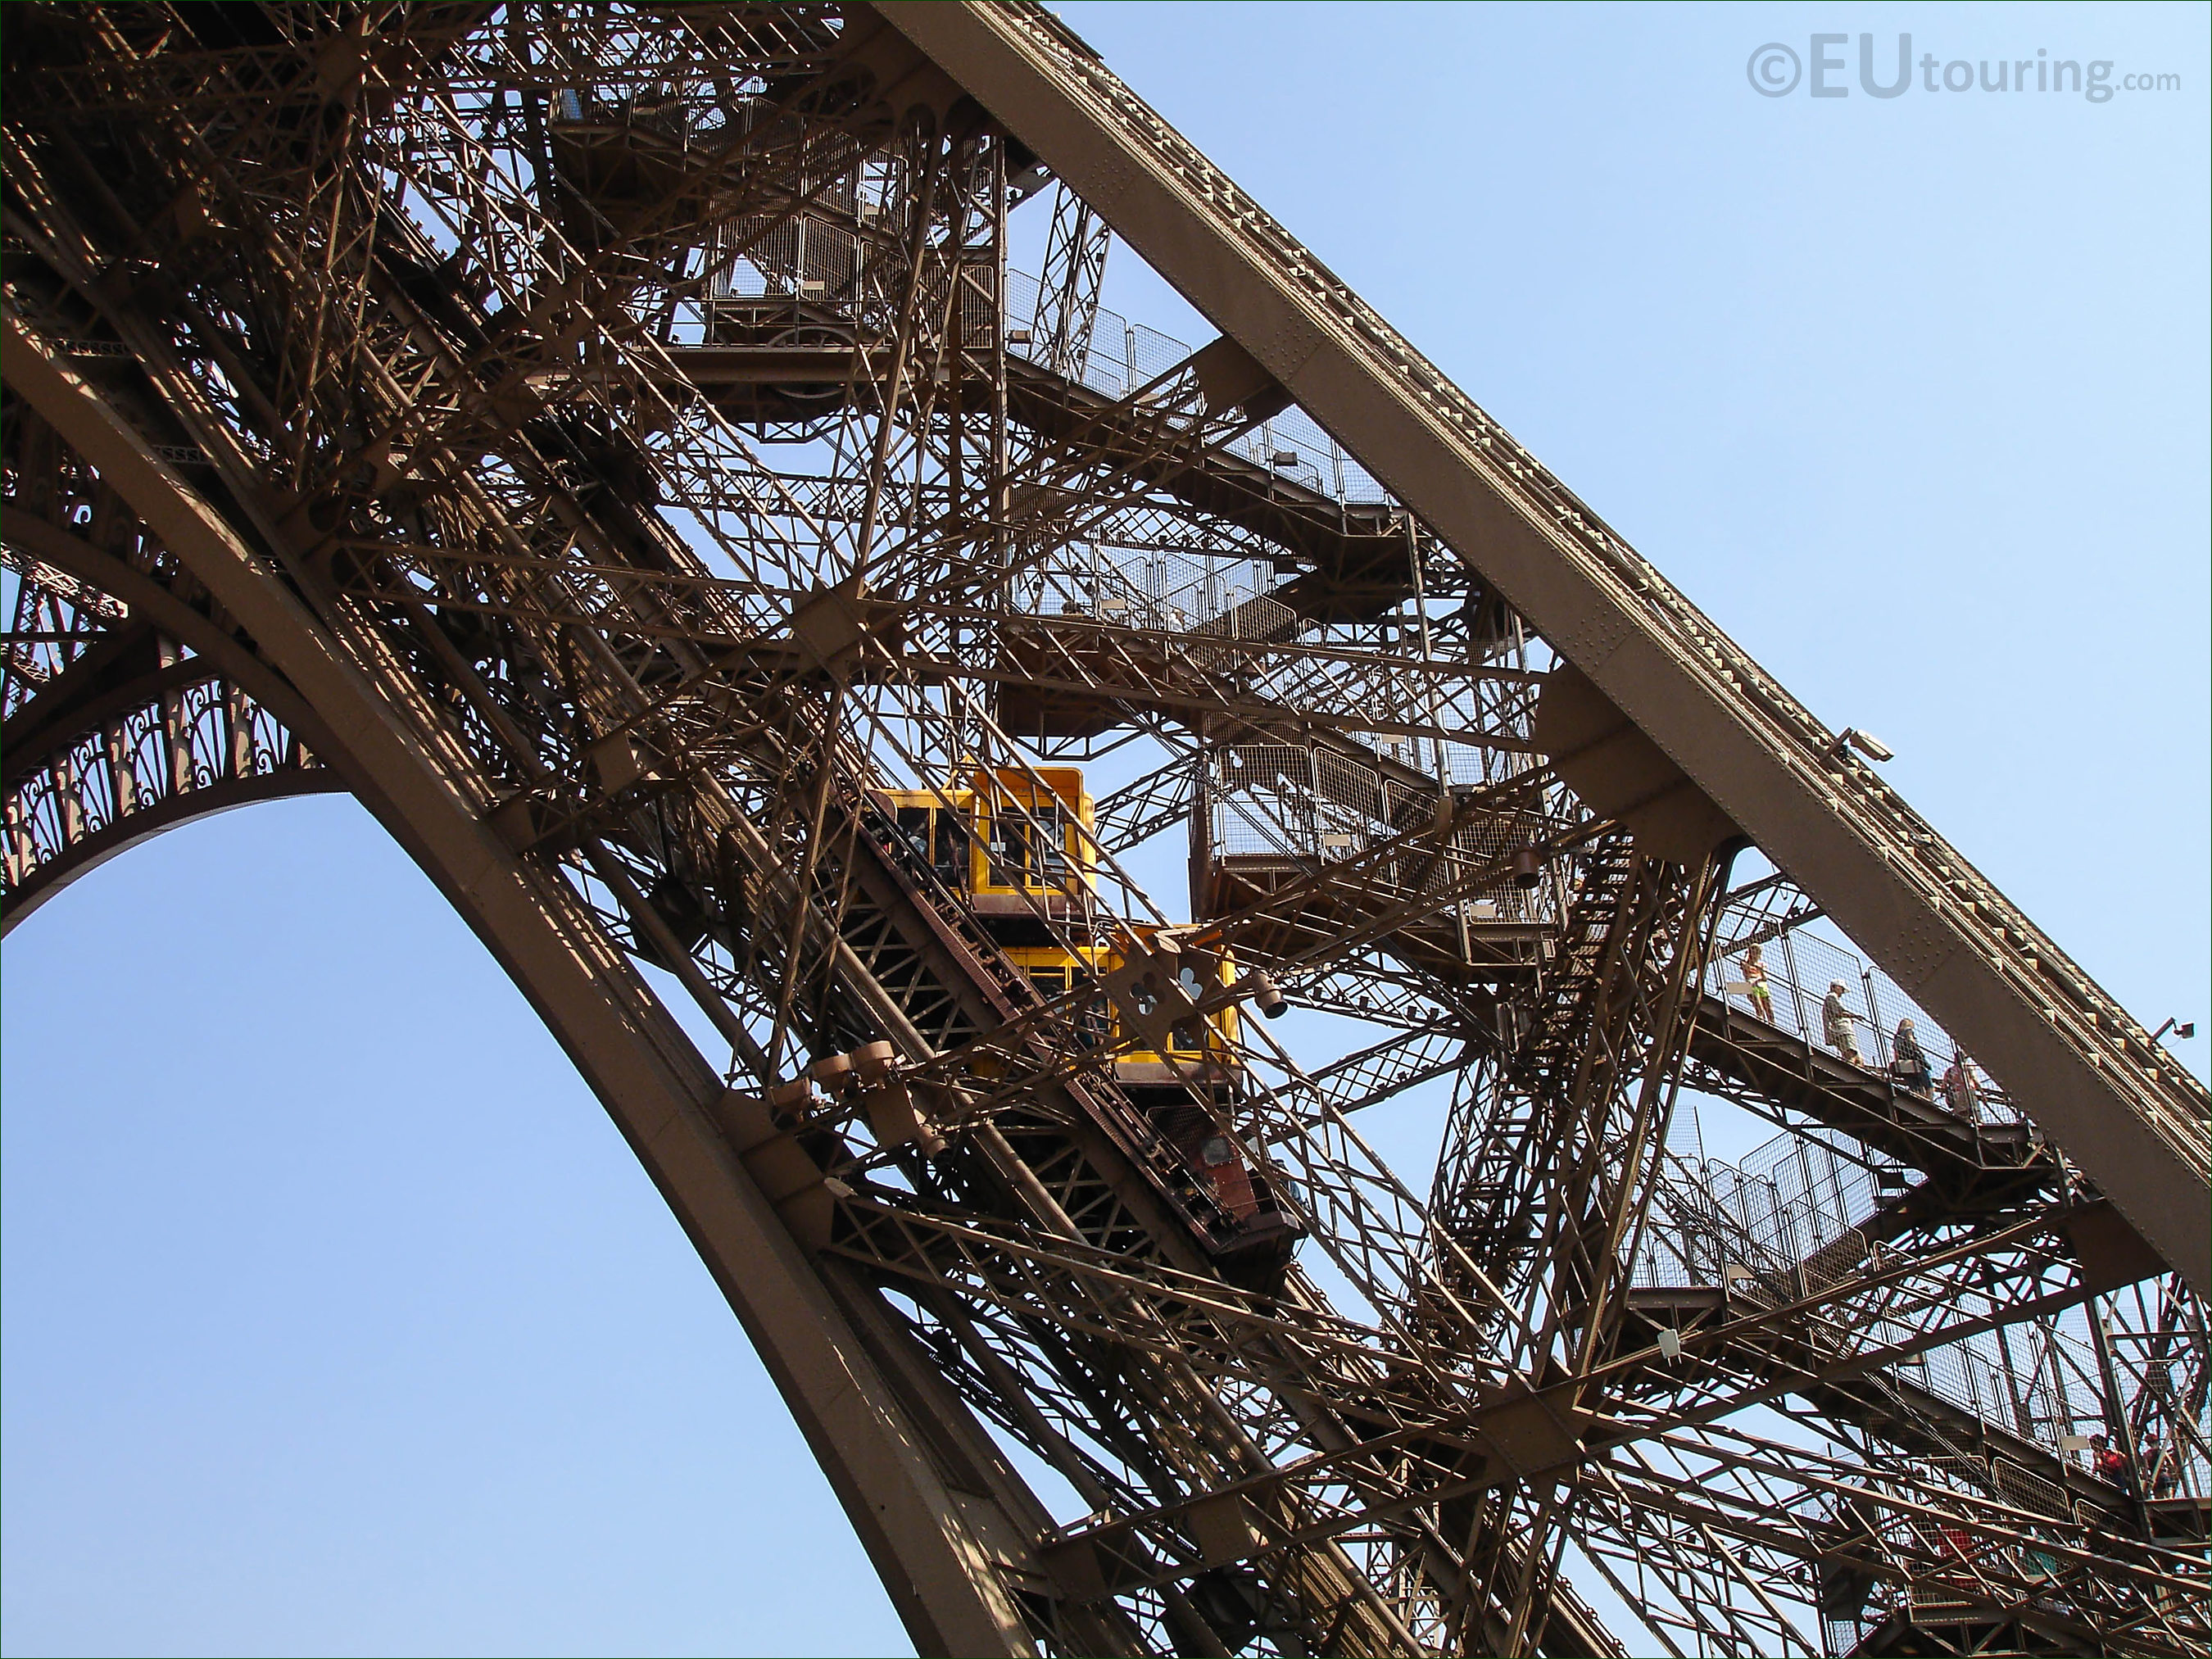 High Definition Photographs Of The Eiffel Tower In Paris